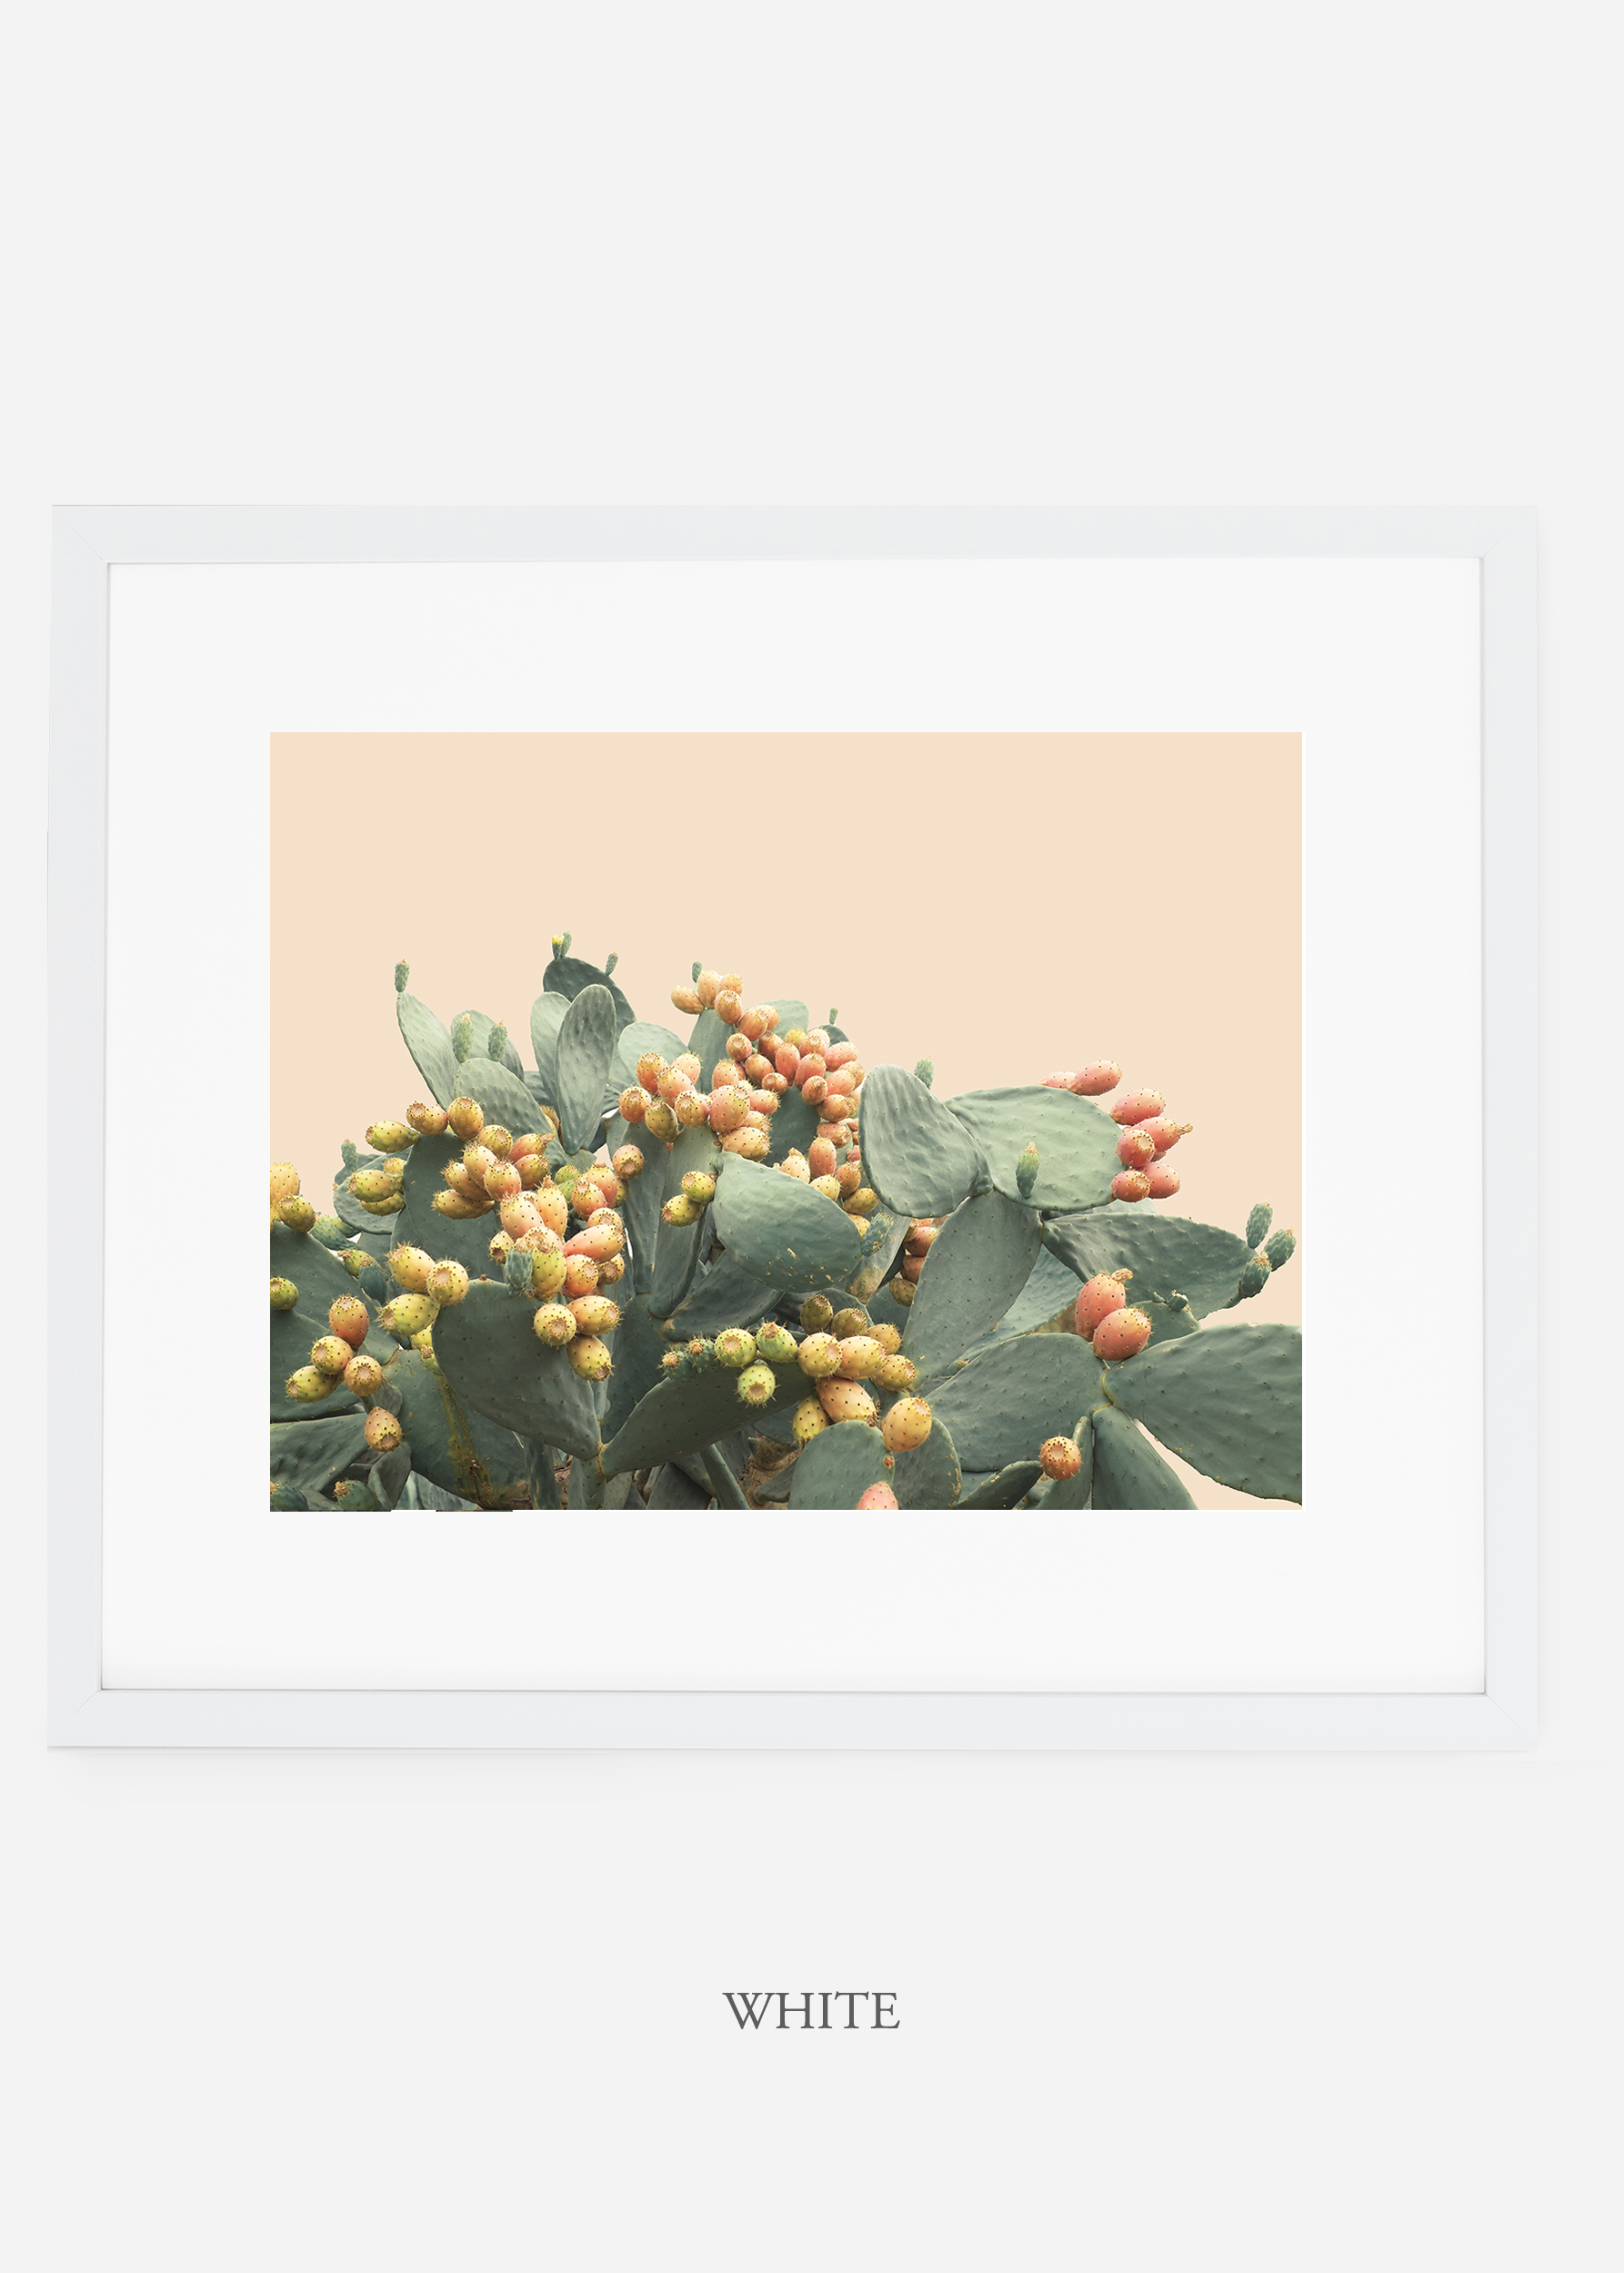 WilderCalifornia_interiordesign_art_whiteframe_PricklyPearNo.1.jpg